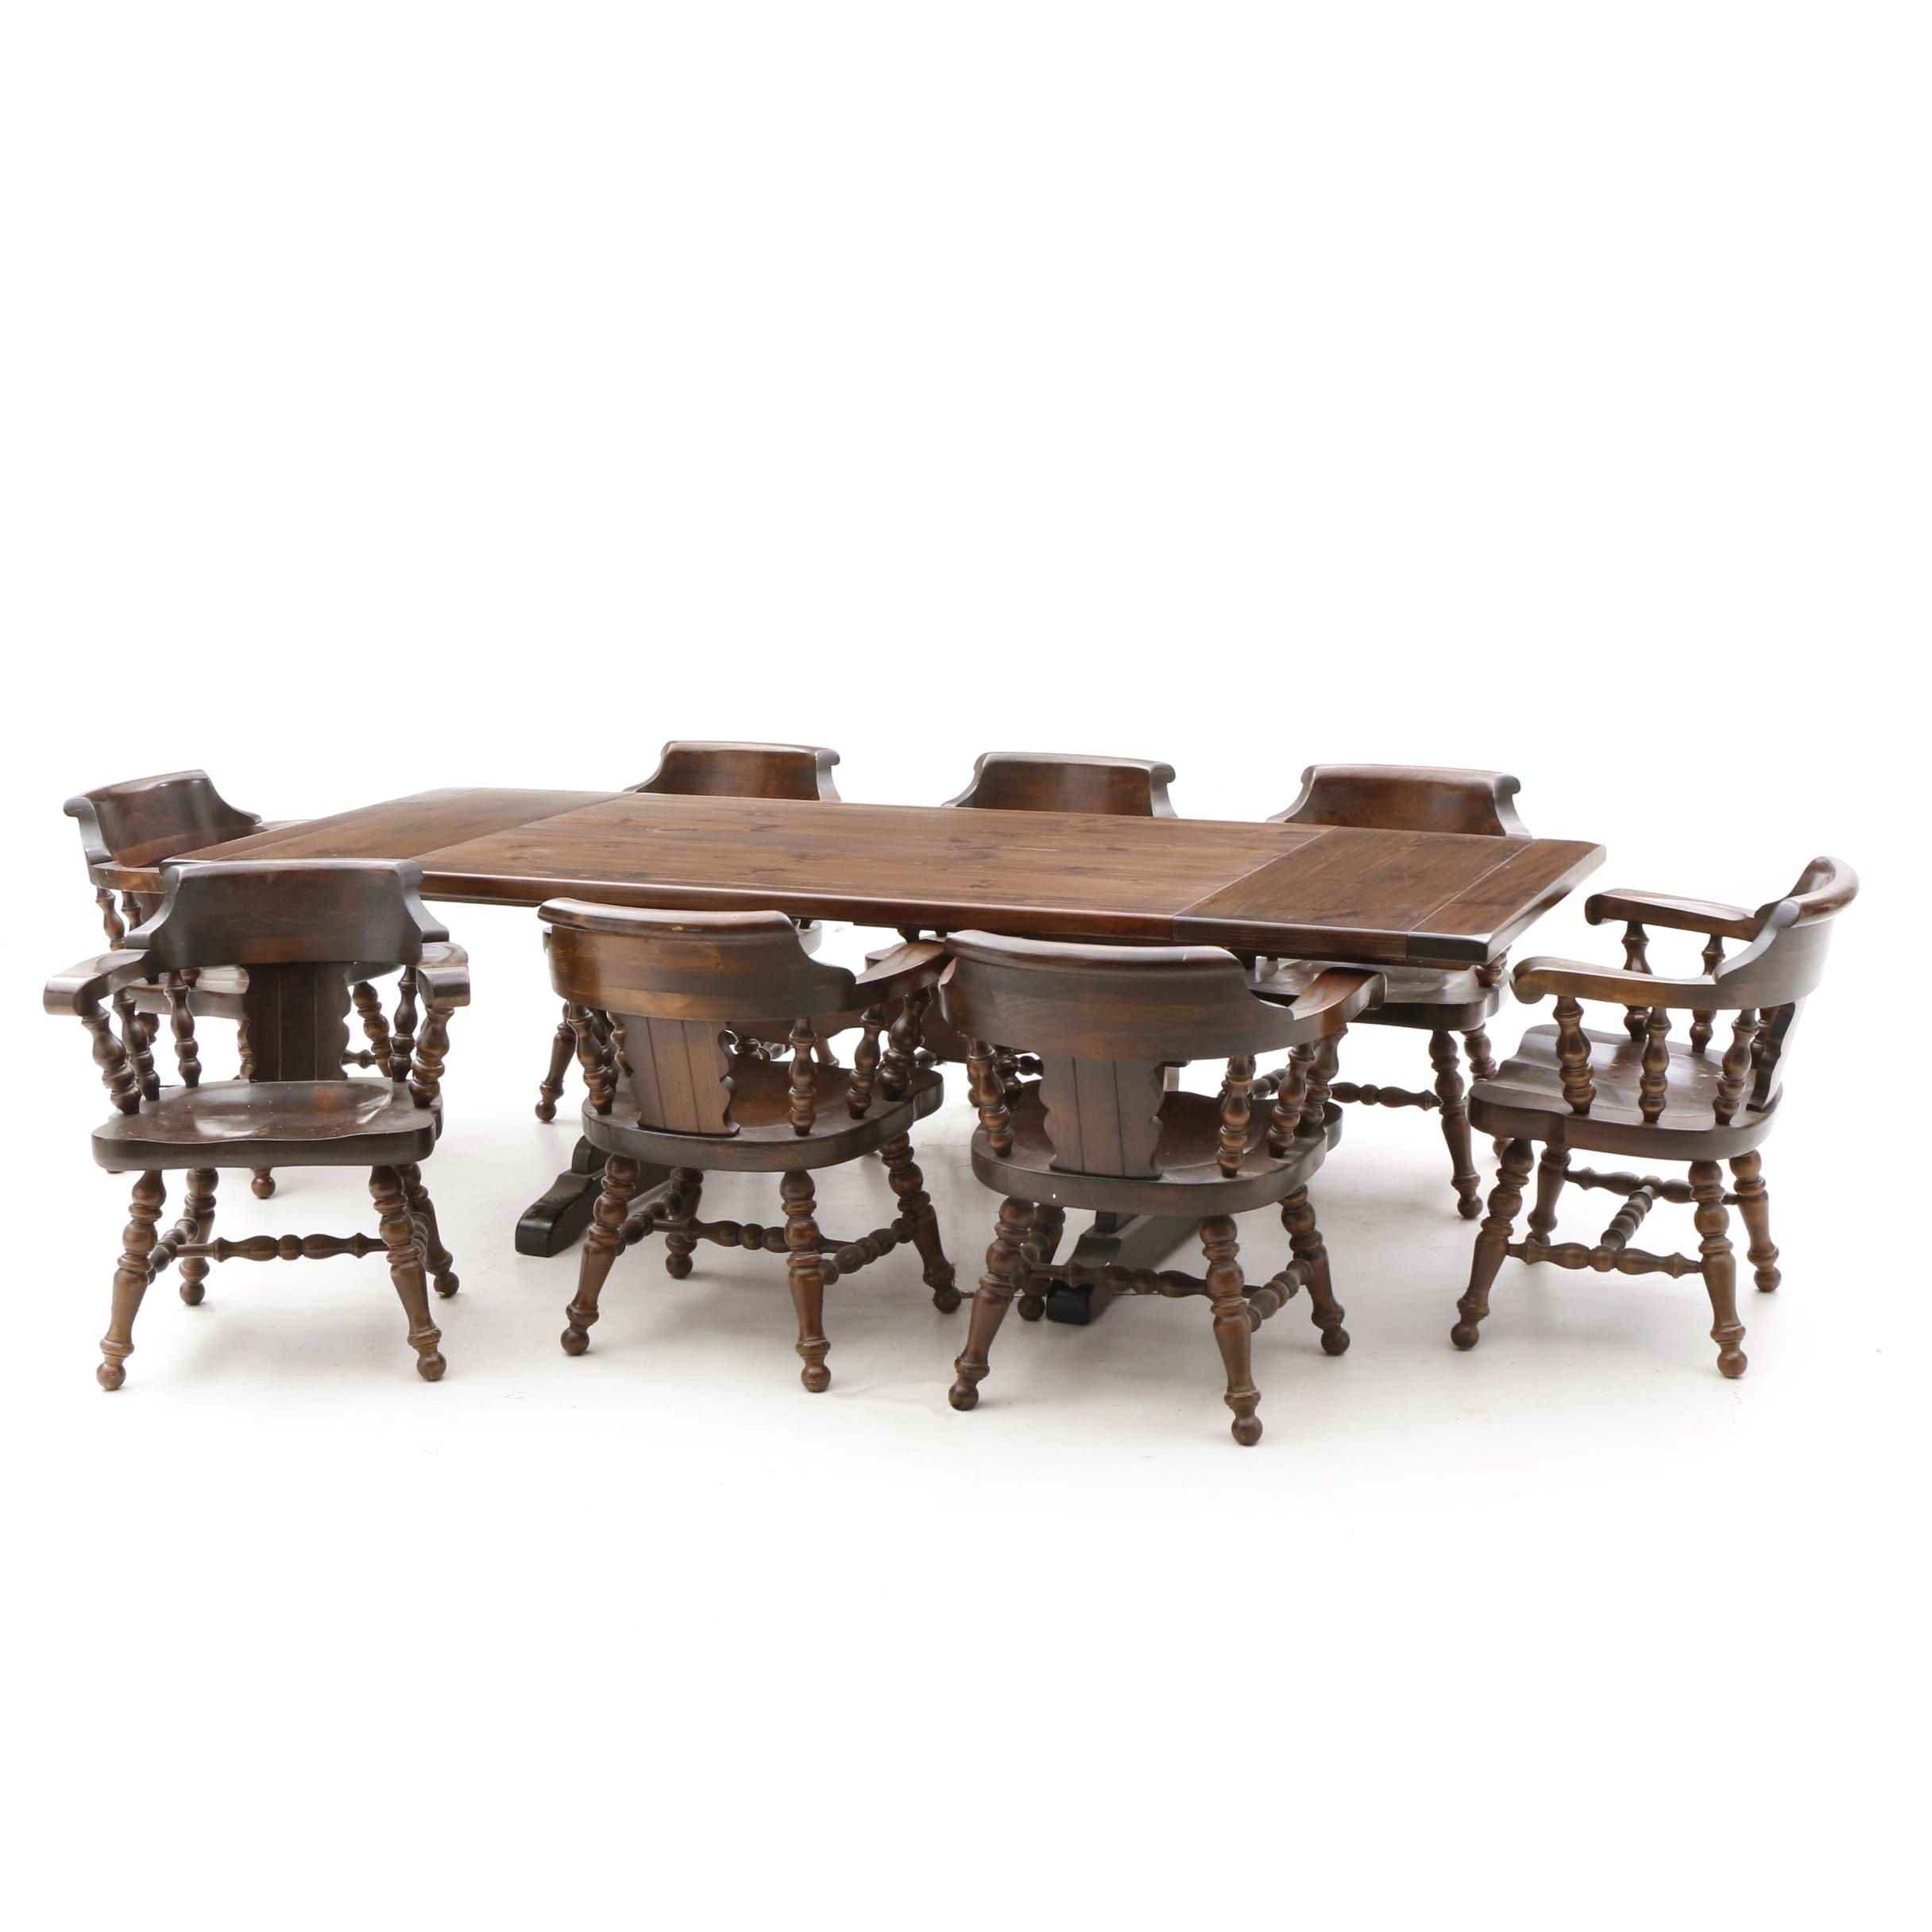 Pine Trestle Dining Table and Chairs , Mid/Late 20th Century